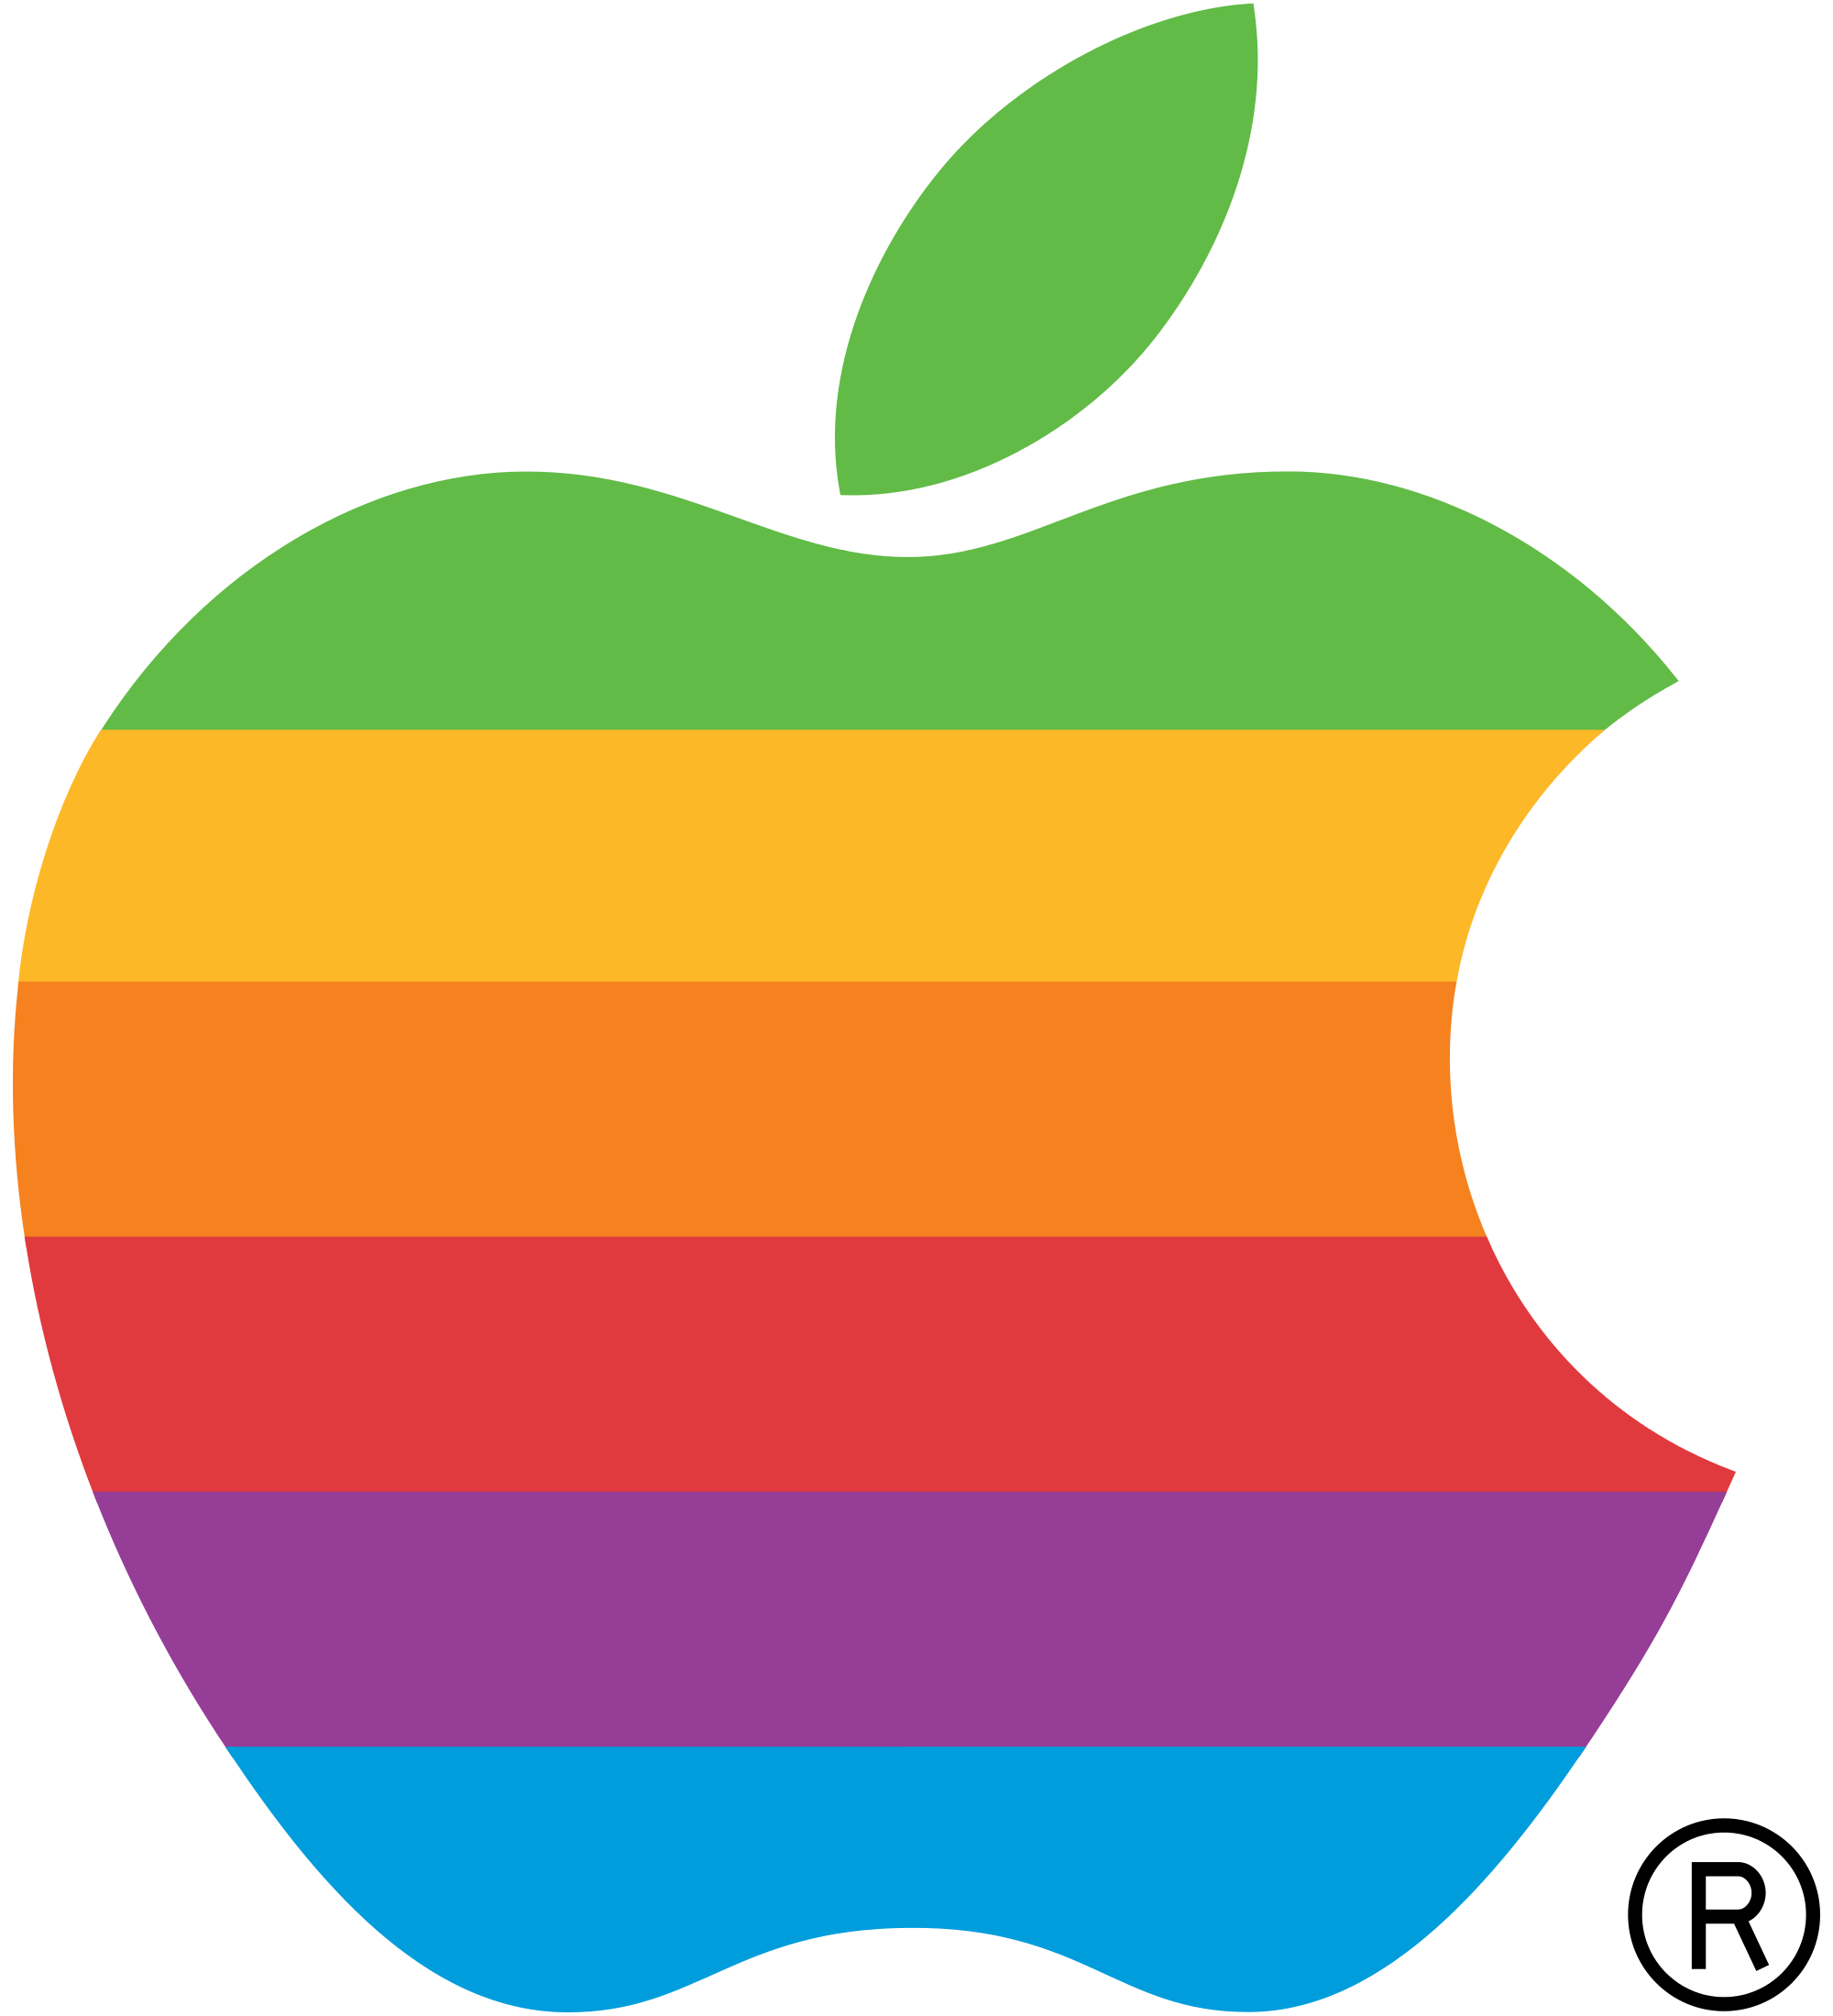 Apple .png. Clipart transparent background clipground